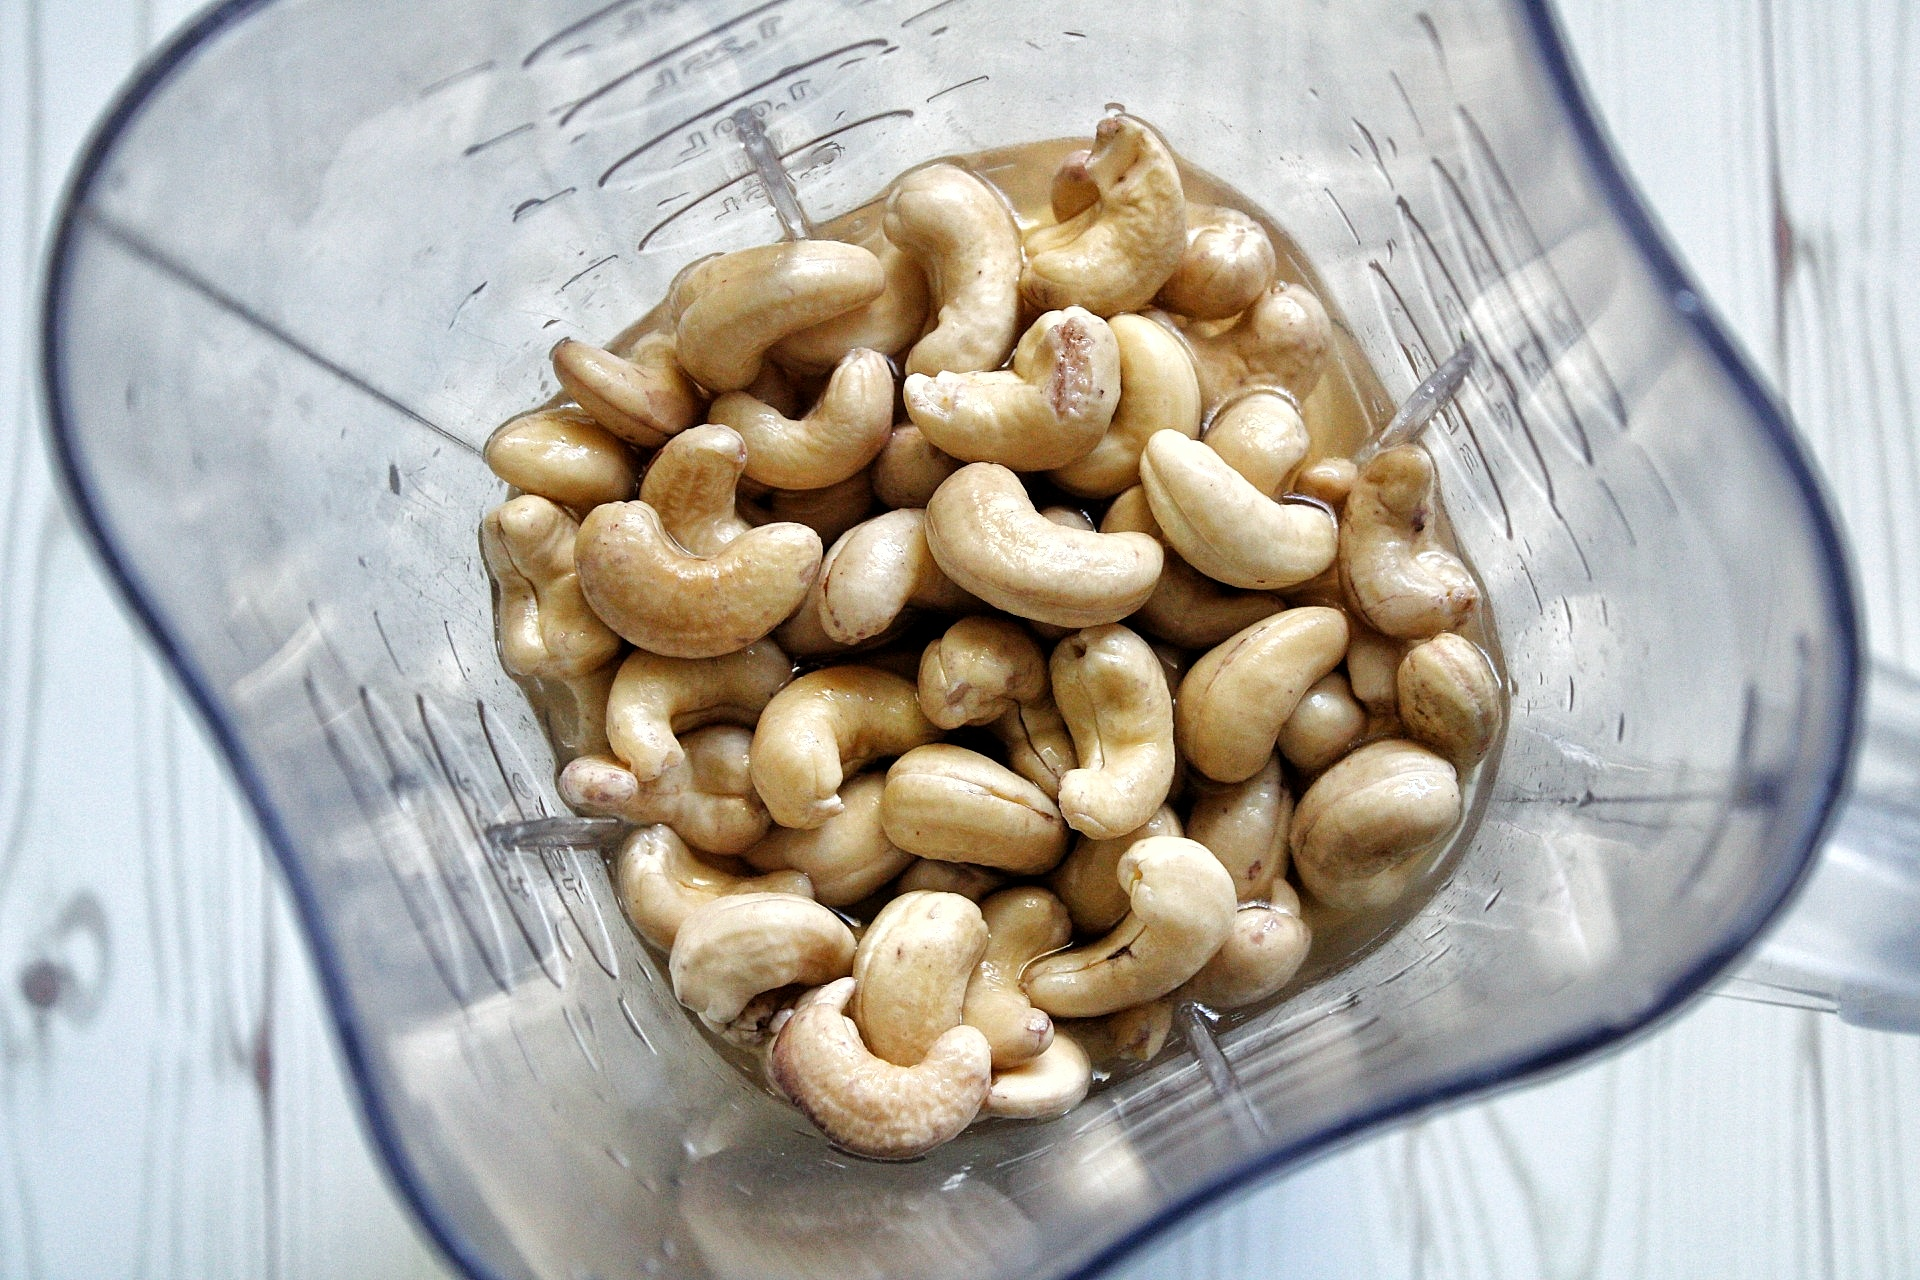 Soaked cashews in a blender